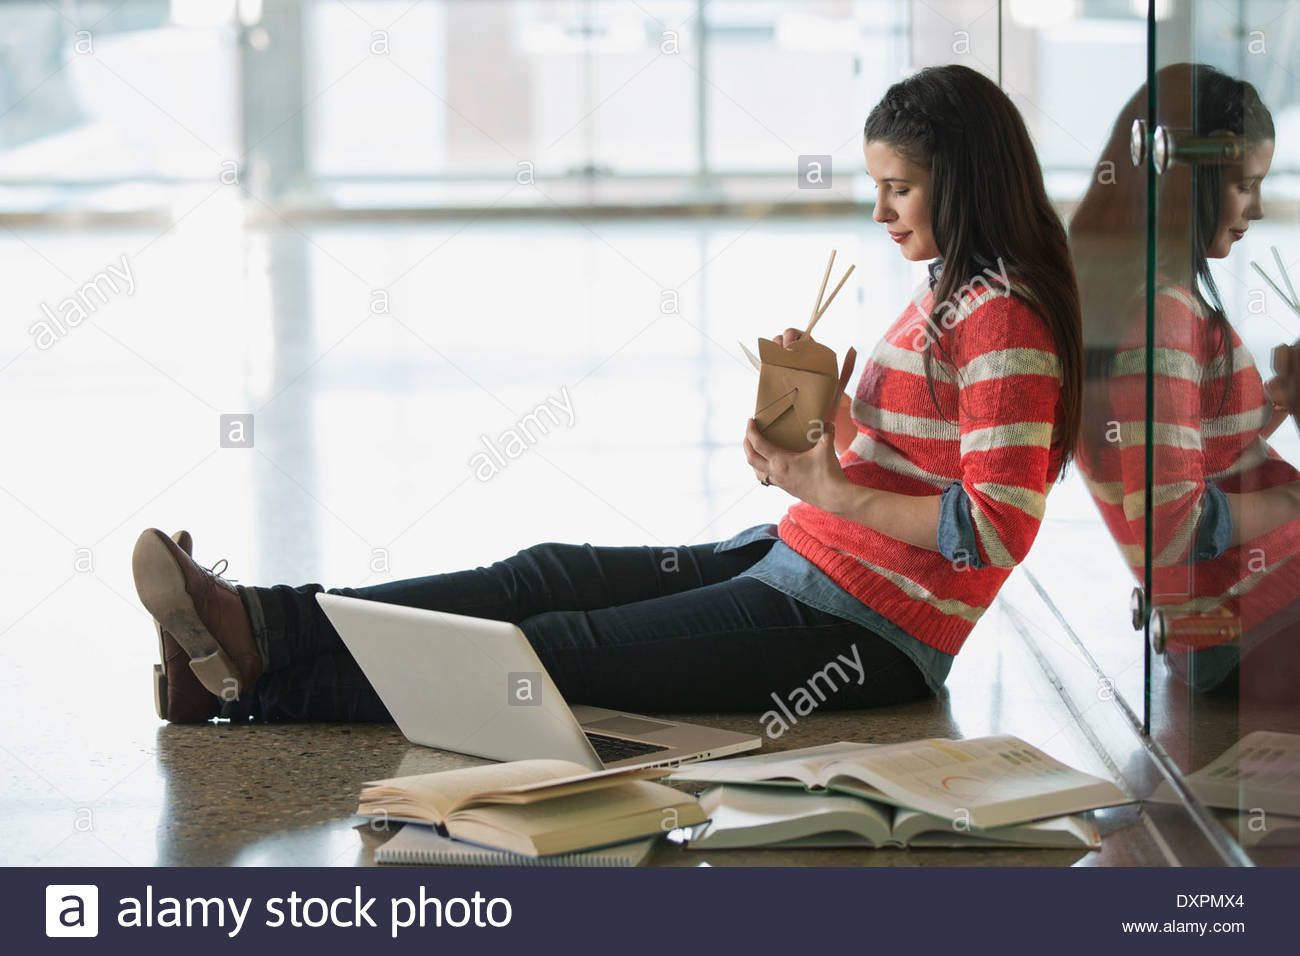 College student eating take-out food near laptop on floor - Stock Image